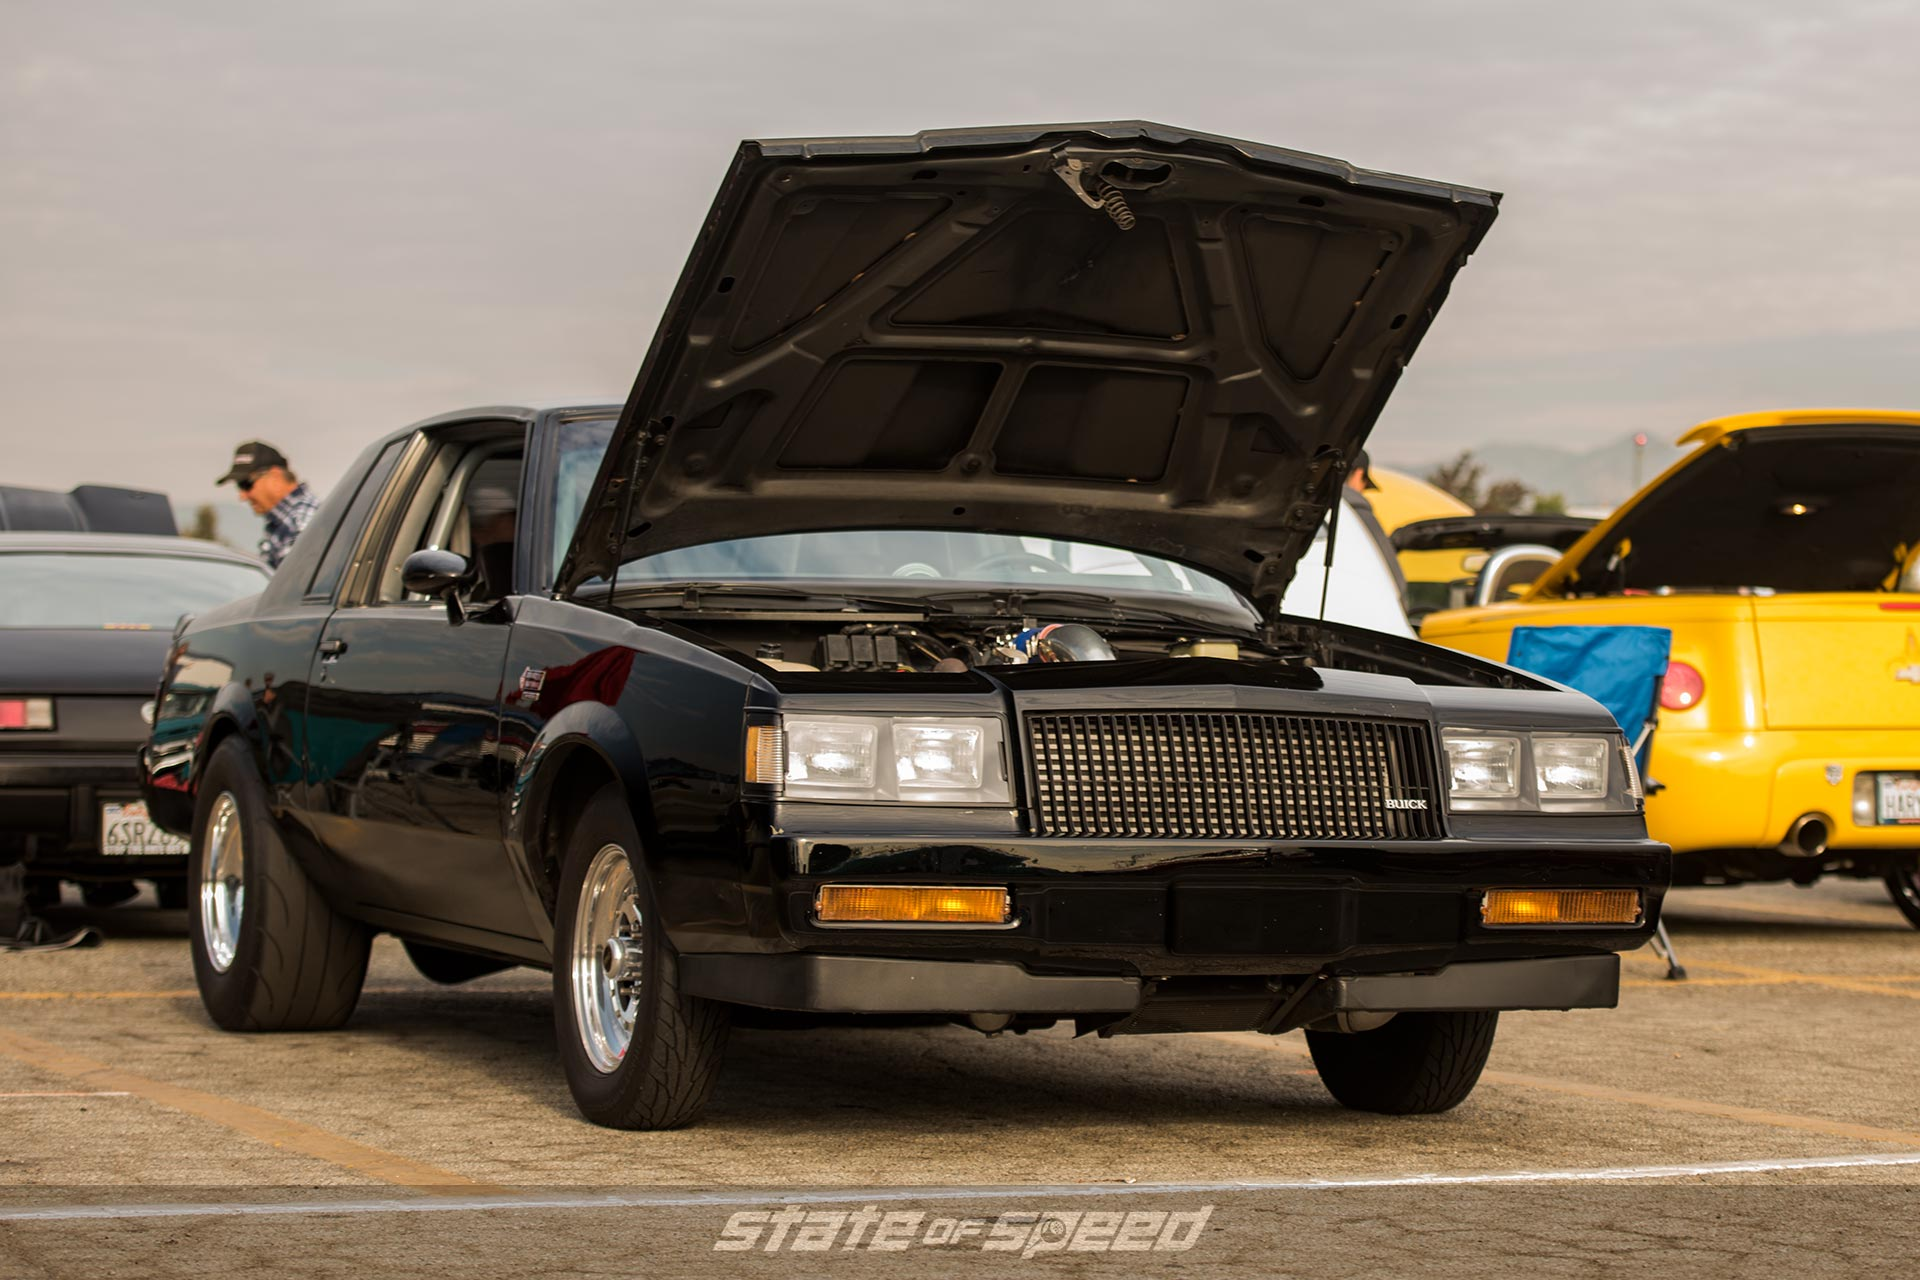 Buick Grand National, turbocharged